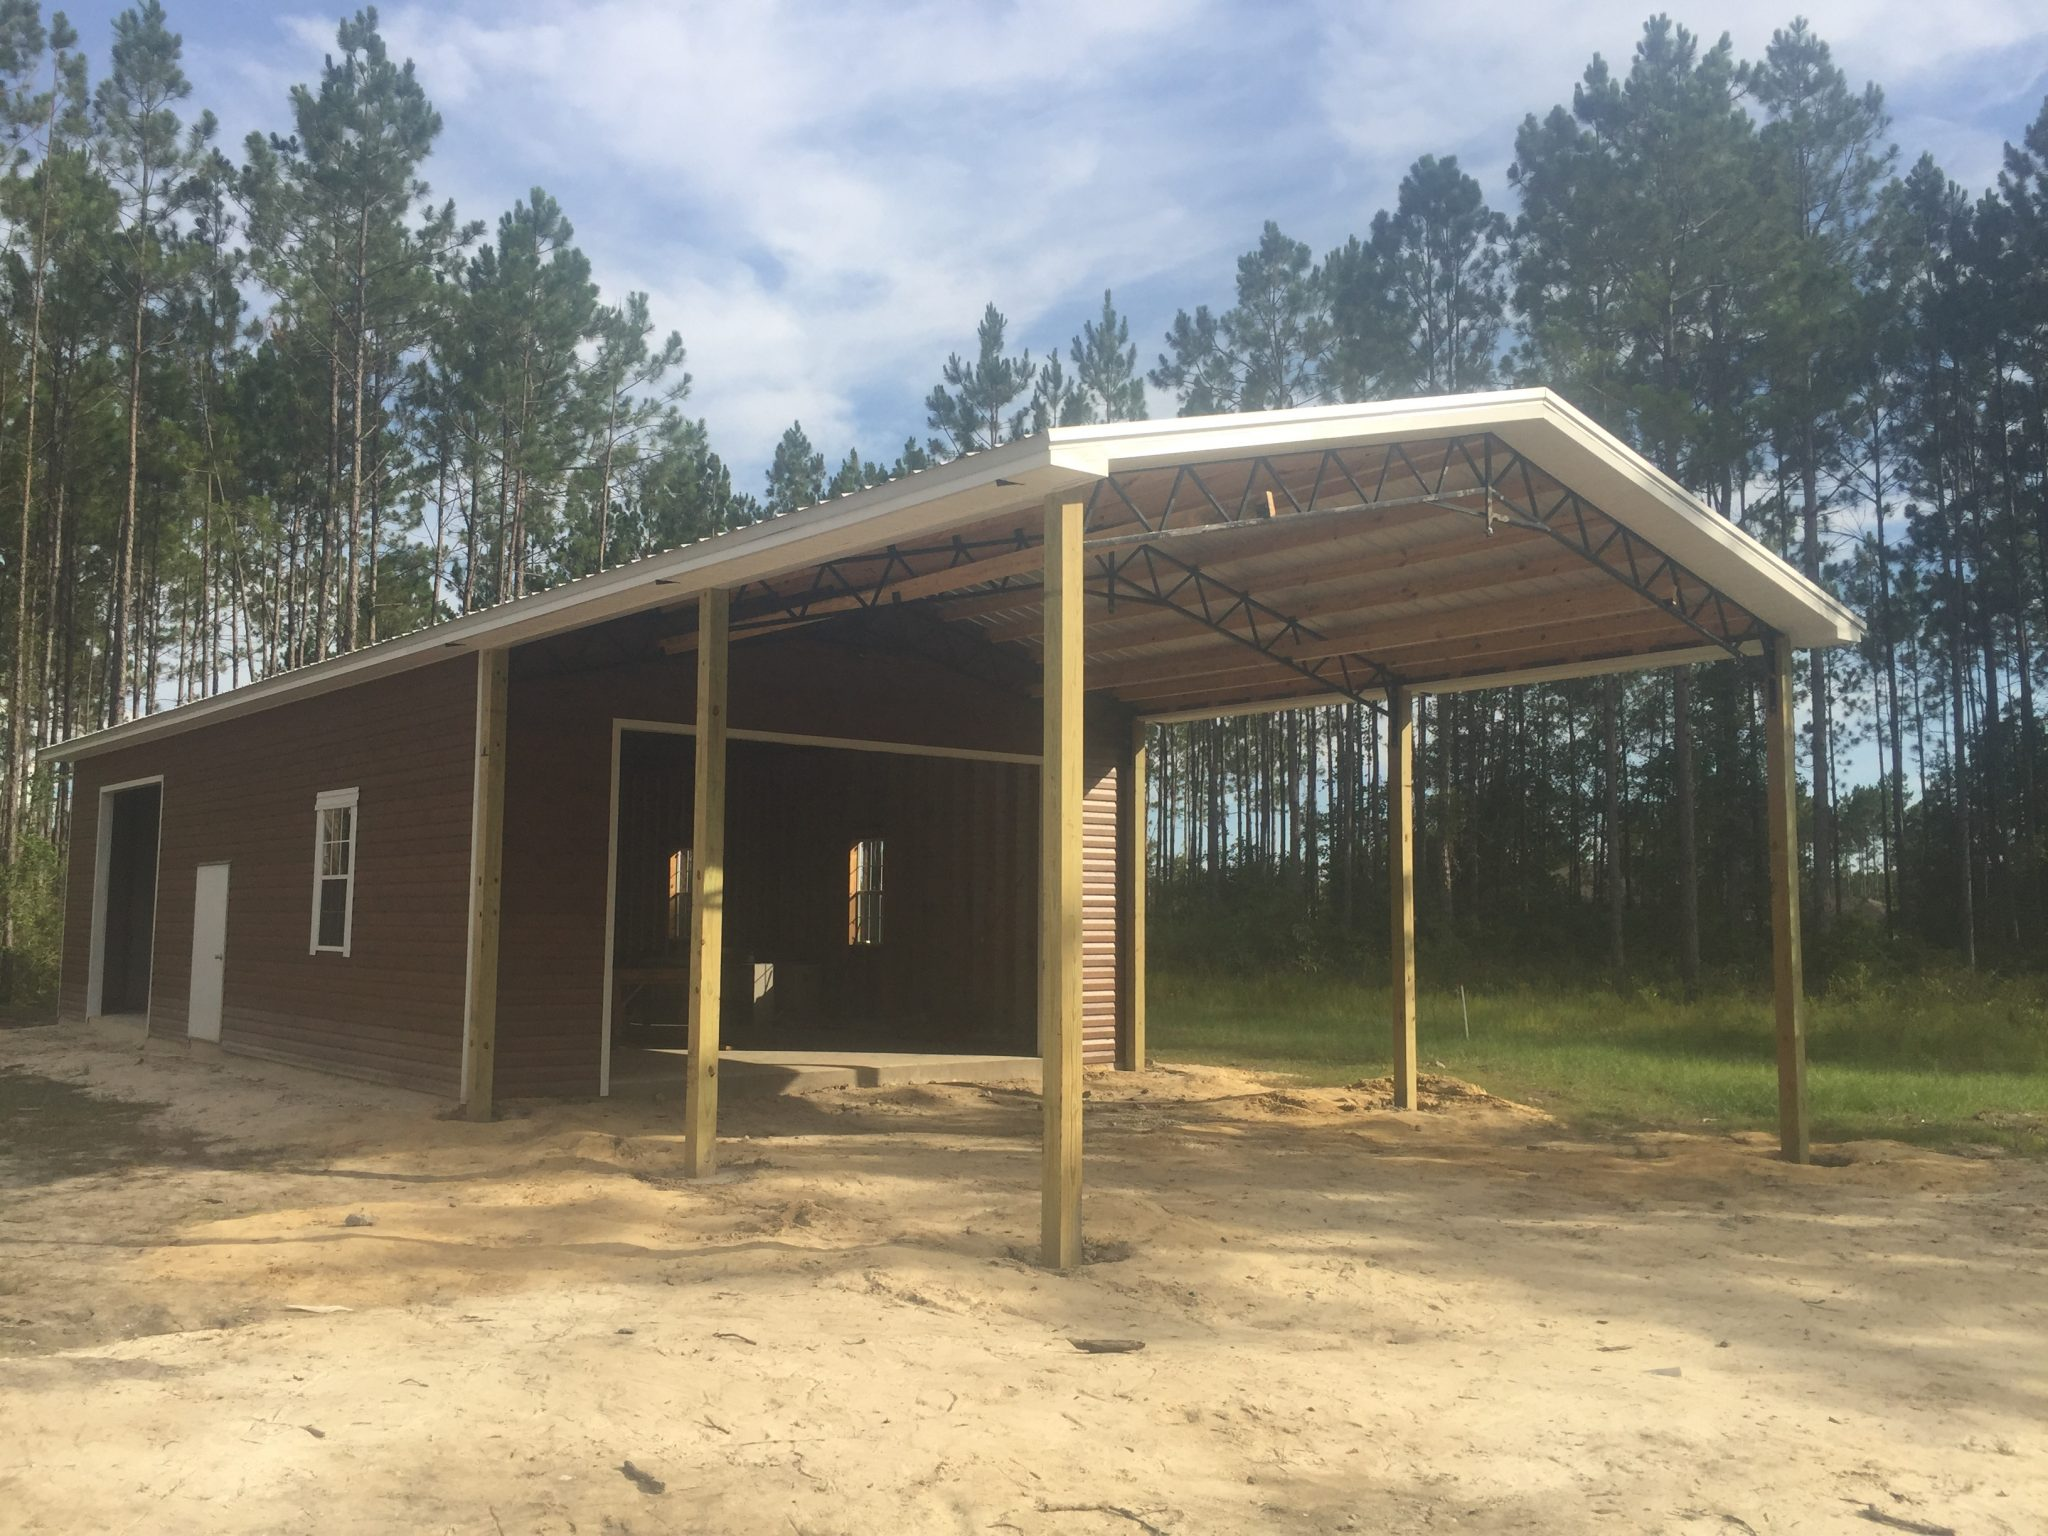 knowledge metal important together roofing kits perhaps can basic most often alabama barn with put a construction pole l benefits the benefit be barns supplier is cost depositphotos c of provides offering